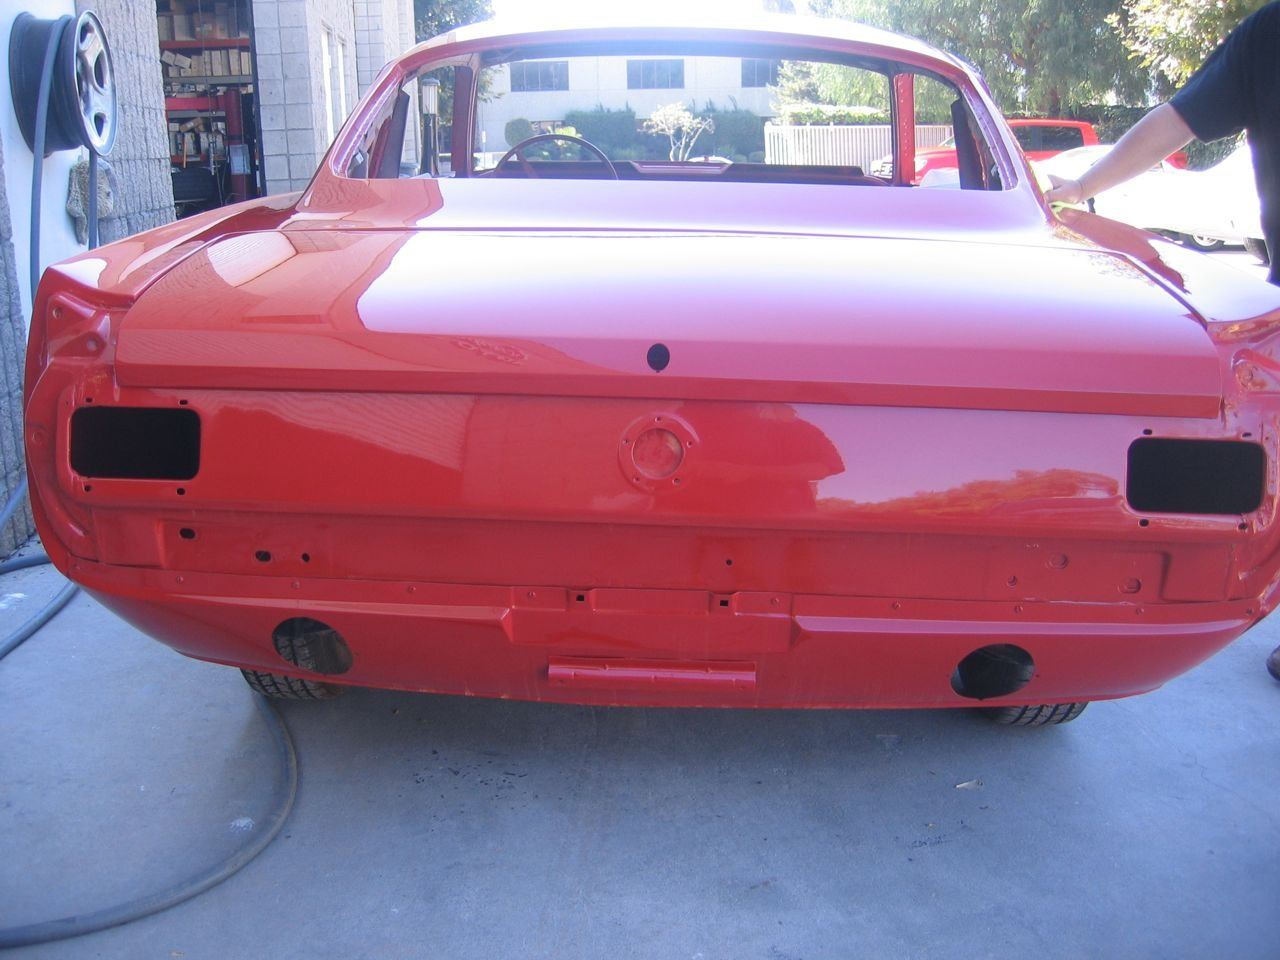 1966 Mustang Coupe Rear Valance Ford Mustang Forum